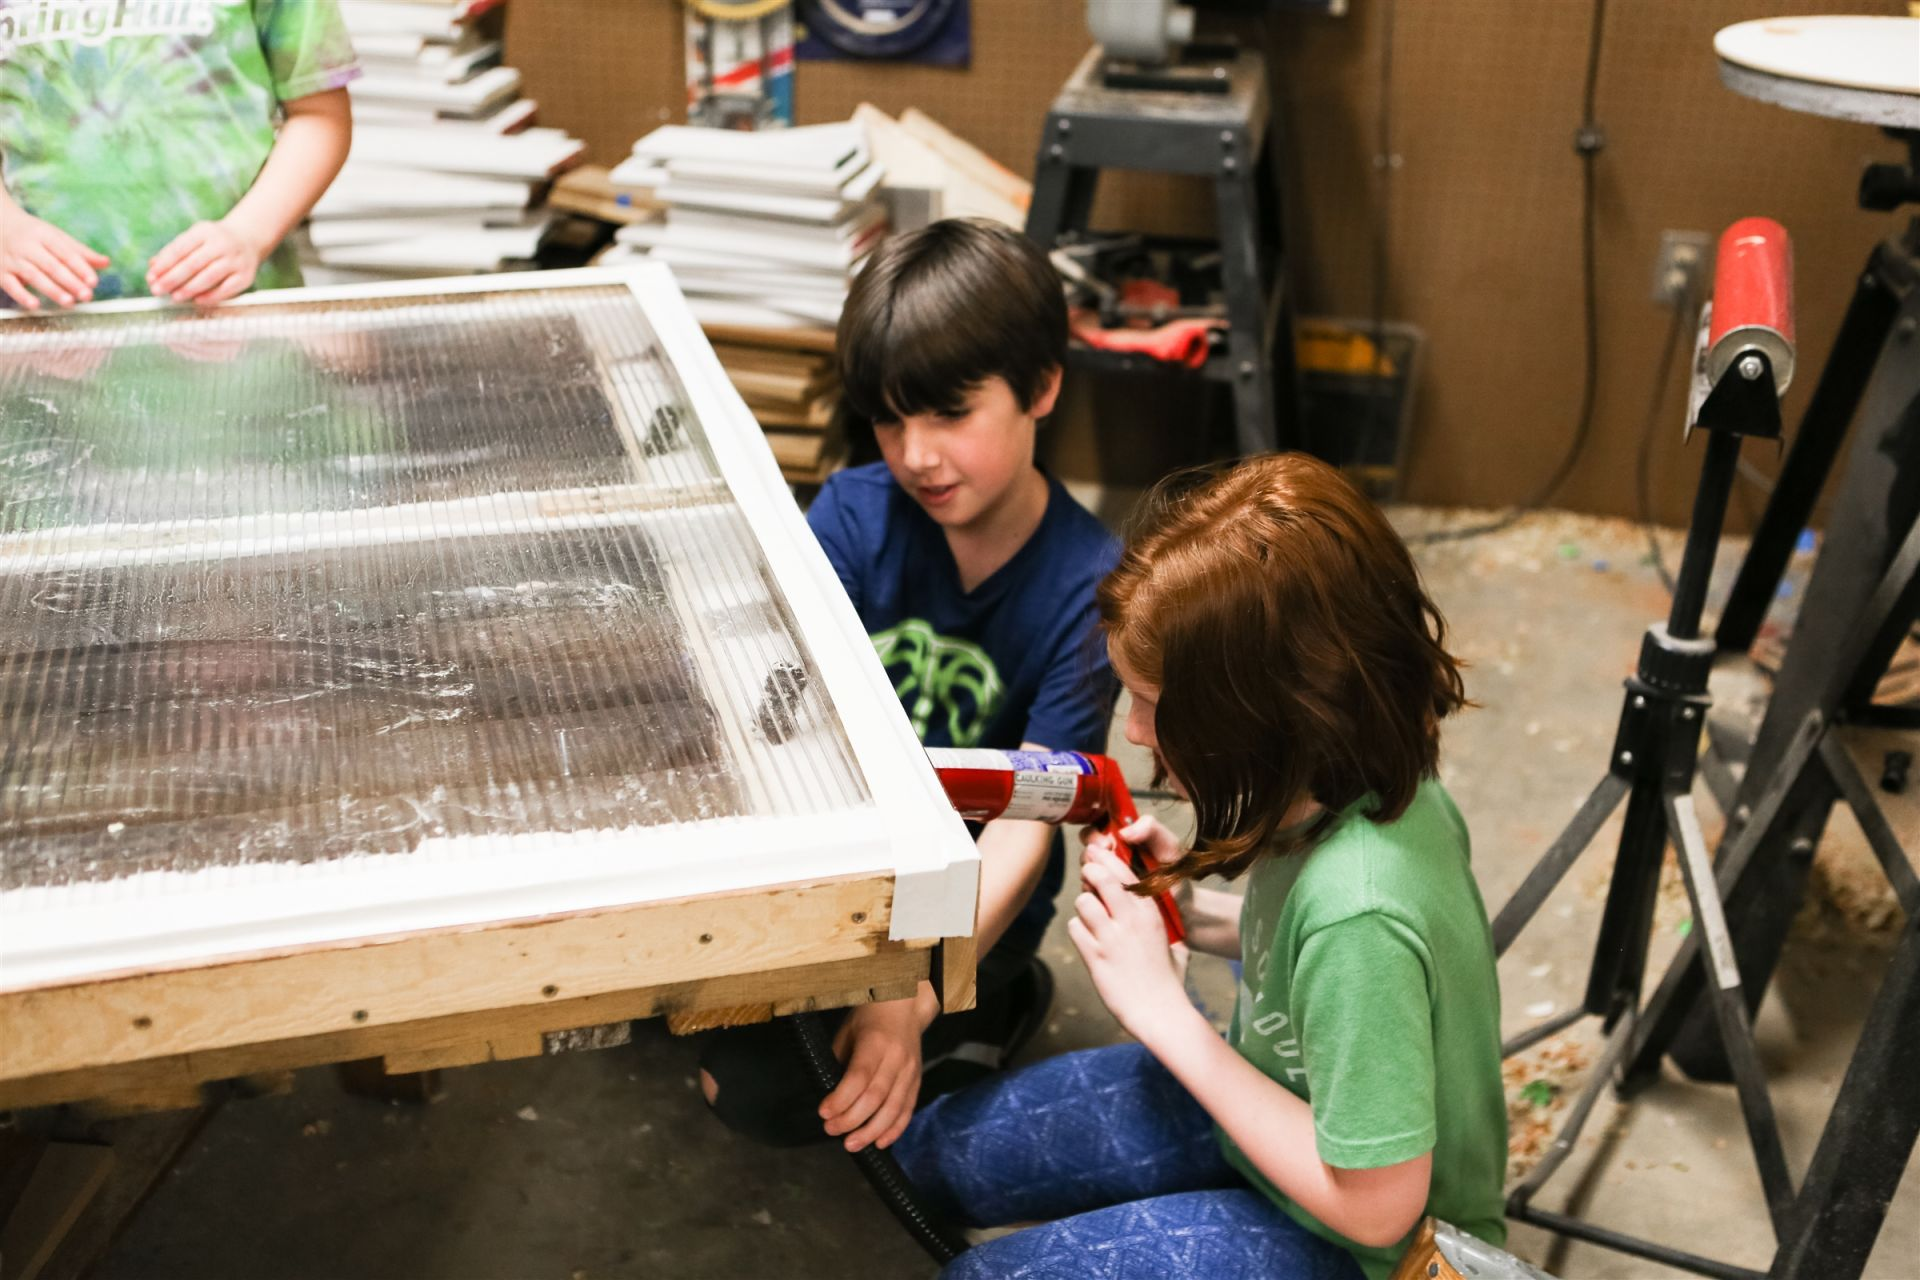 In STEM class, students often do engineering projects that tie in with their other classes. Last year, the students built a SOLAR HEATER in our wood shop to warm the Orchard hoop house in the winter. Students painted soda cans black and arranged them in a plexiglass covered frame, which they attached using recycled vacuum tubes to the hoop house.